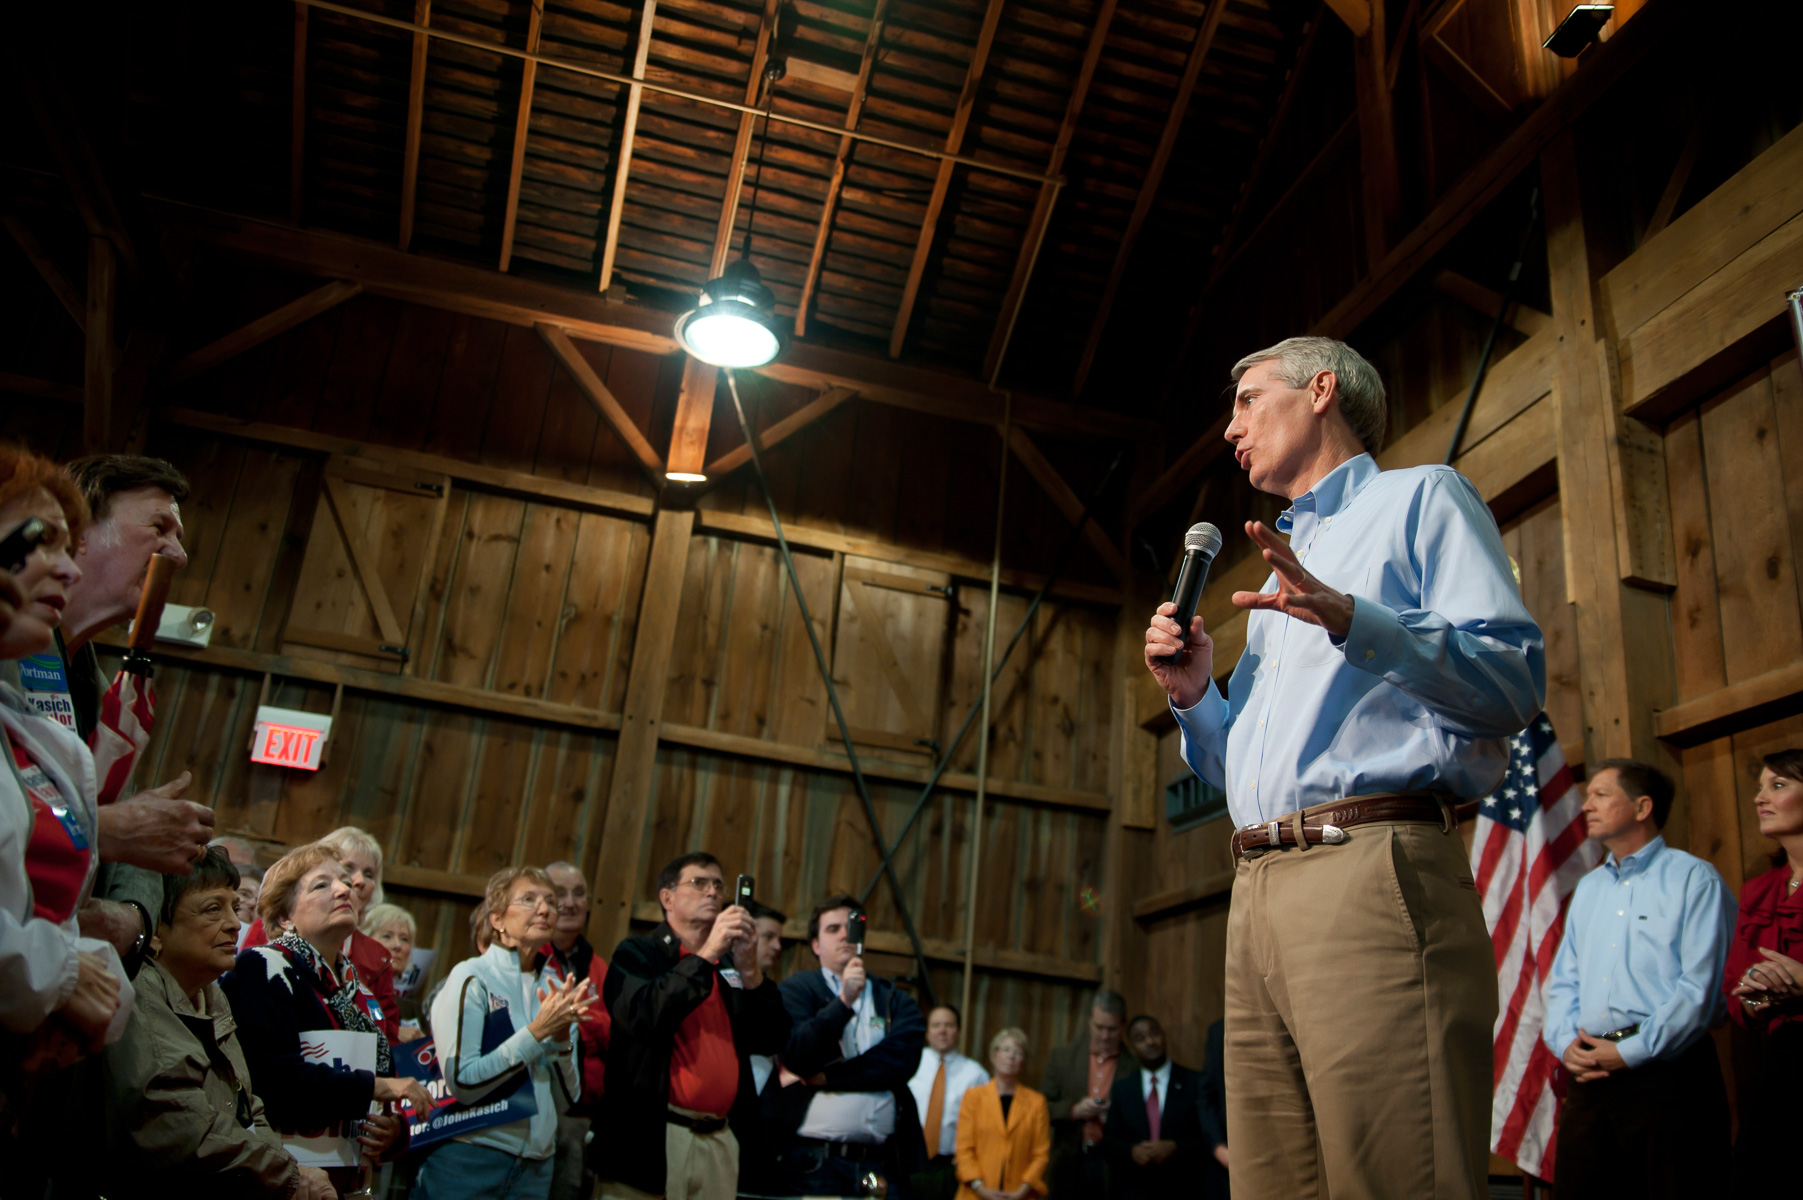 Rob Portman campaigns for the US Senate at the  Everal Barn in Westerville, Ohio. October 25, 2010. ©Vanessa Vick